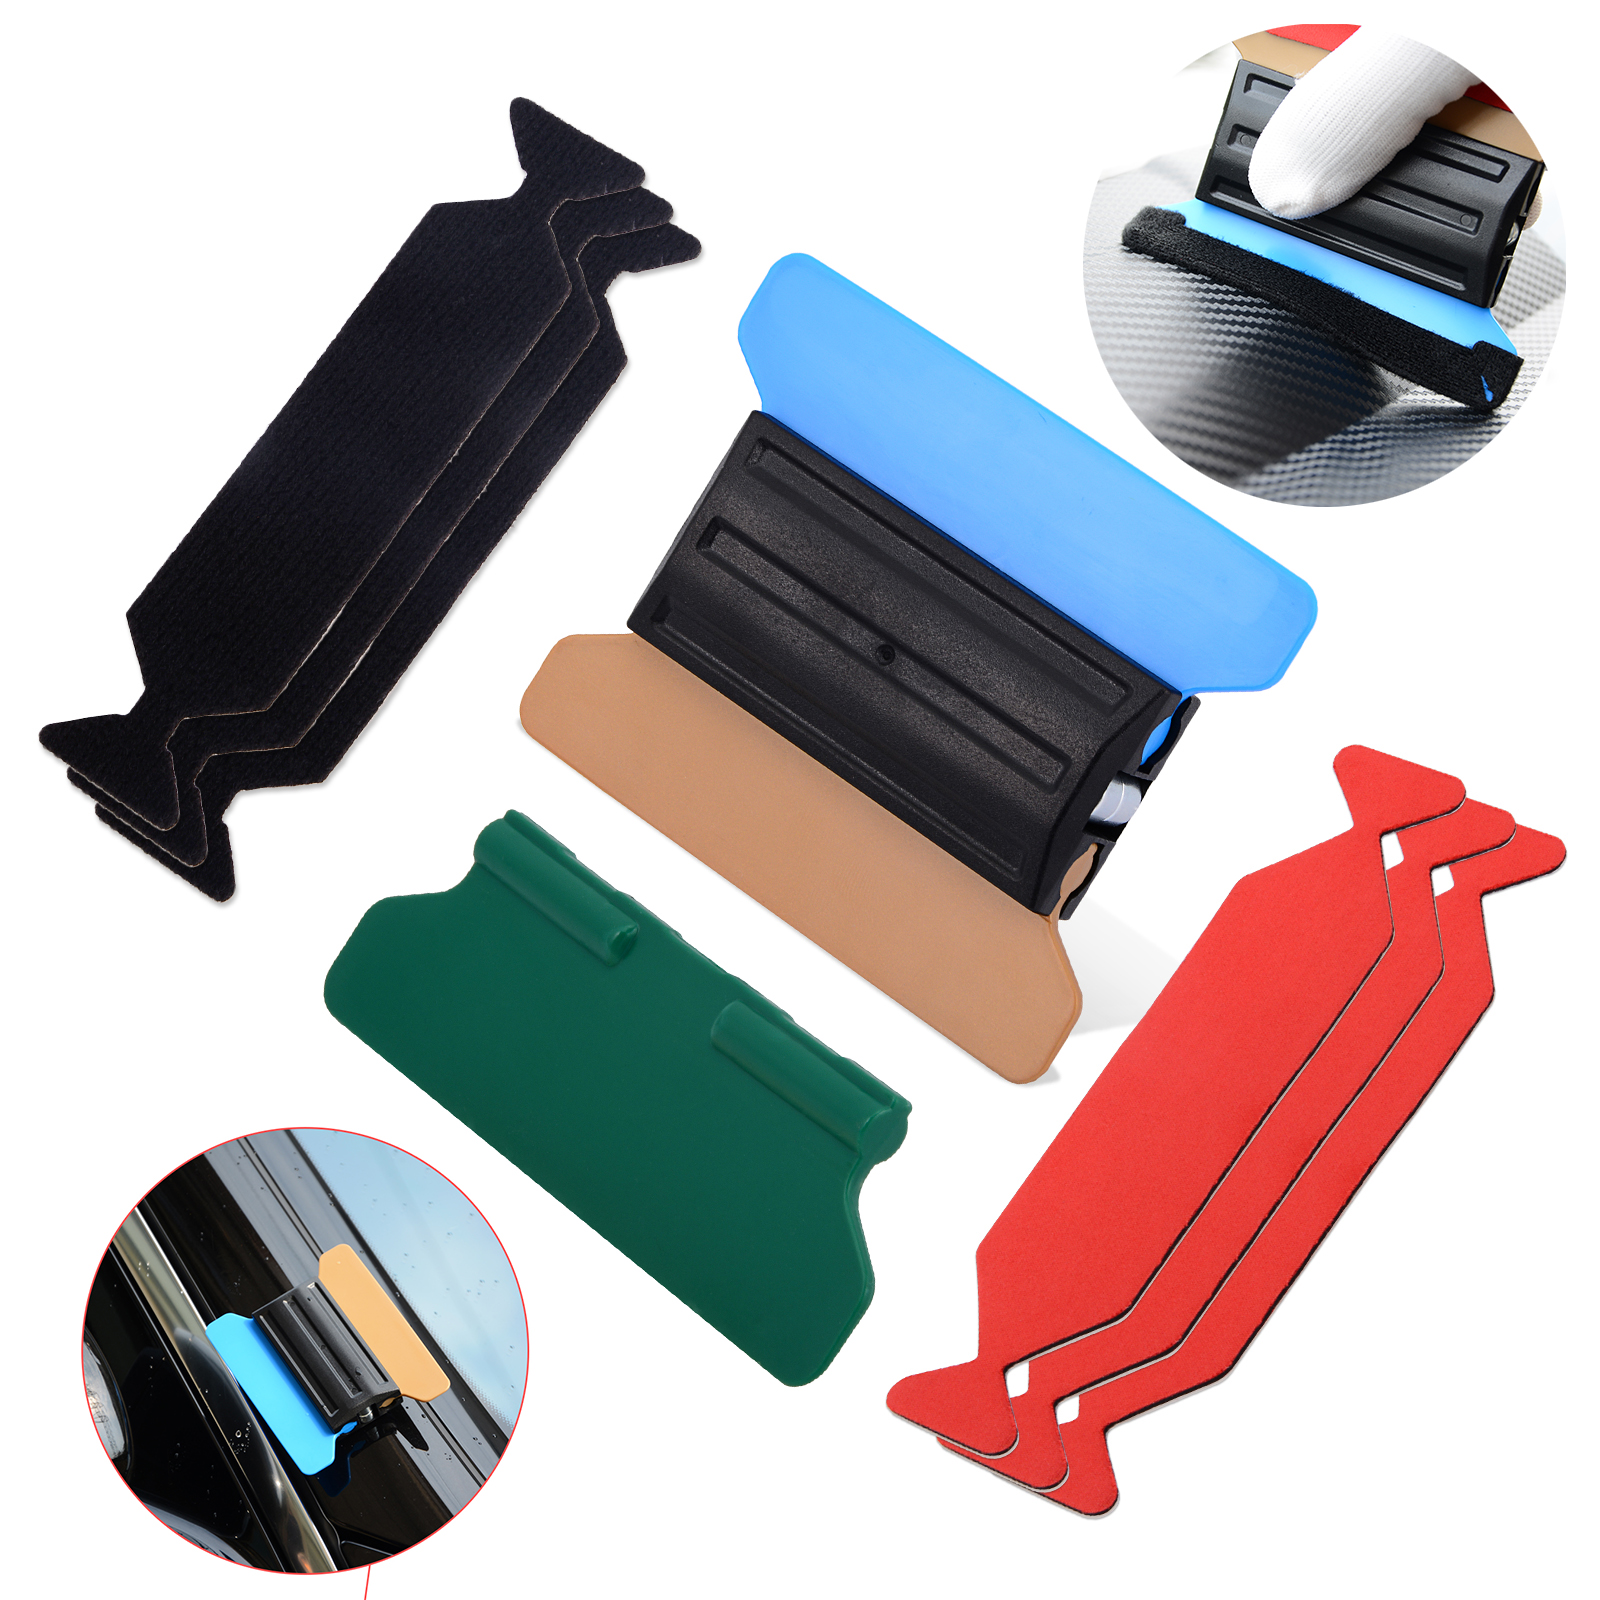 FOSHIO Vinyl Wrap Car Film Magnetic Squeegee With 6pcs Scrapper Fabric Cloth Carbon Fiber Window Tint Tools Set Auto Accessories